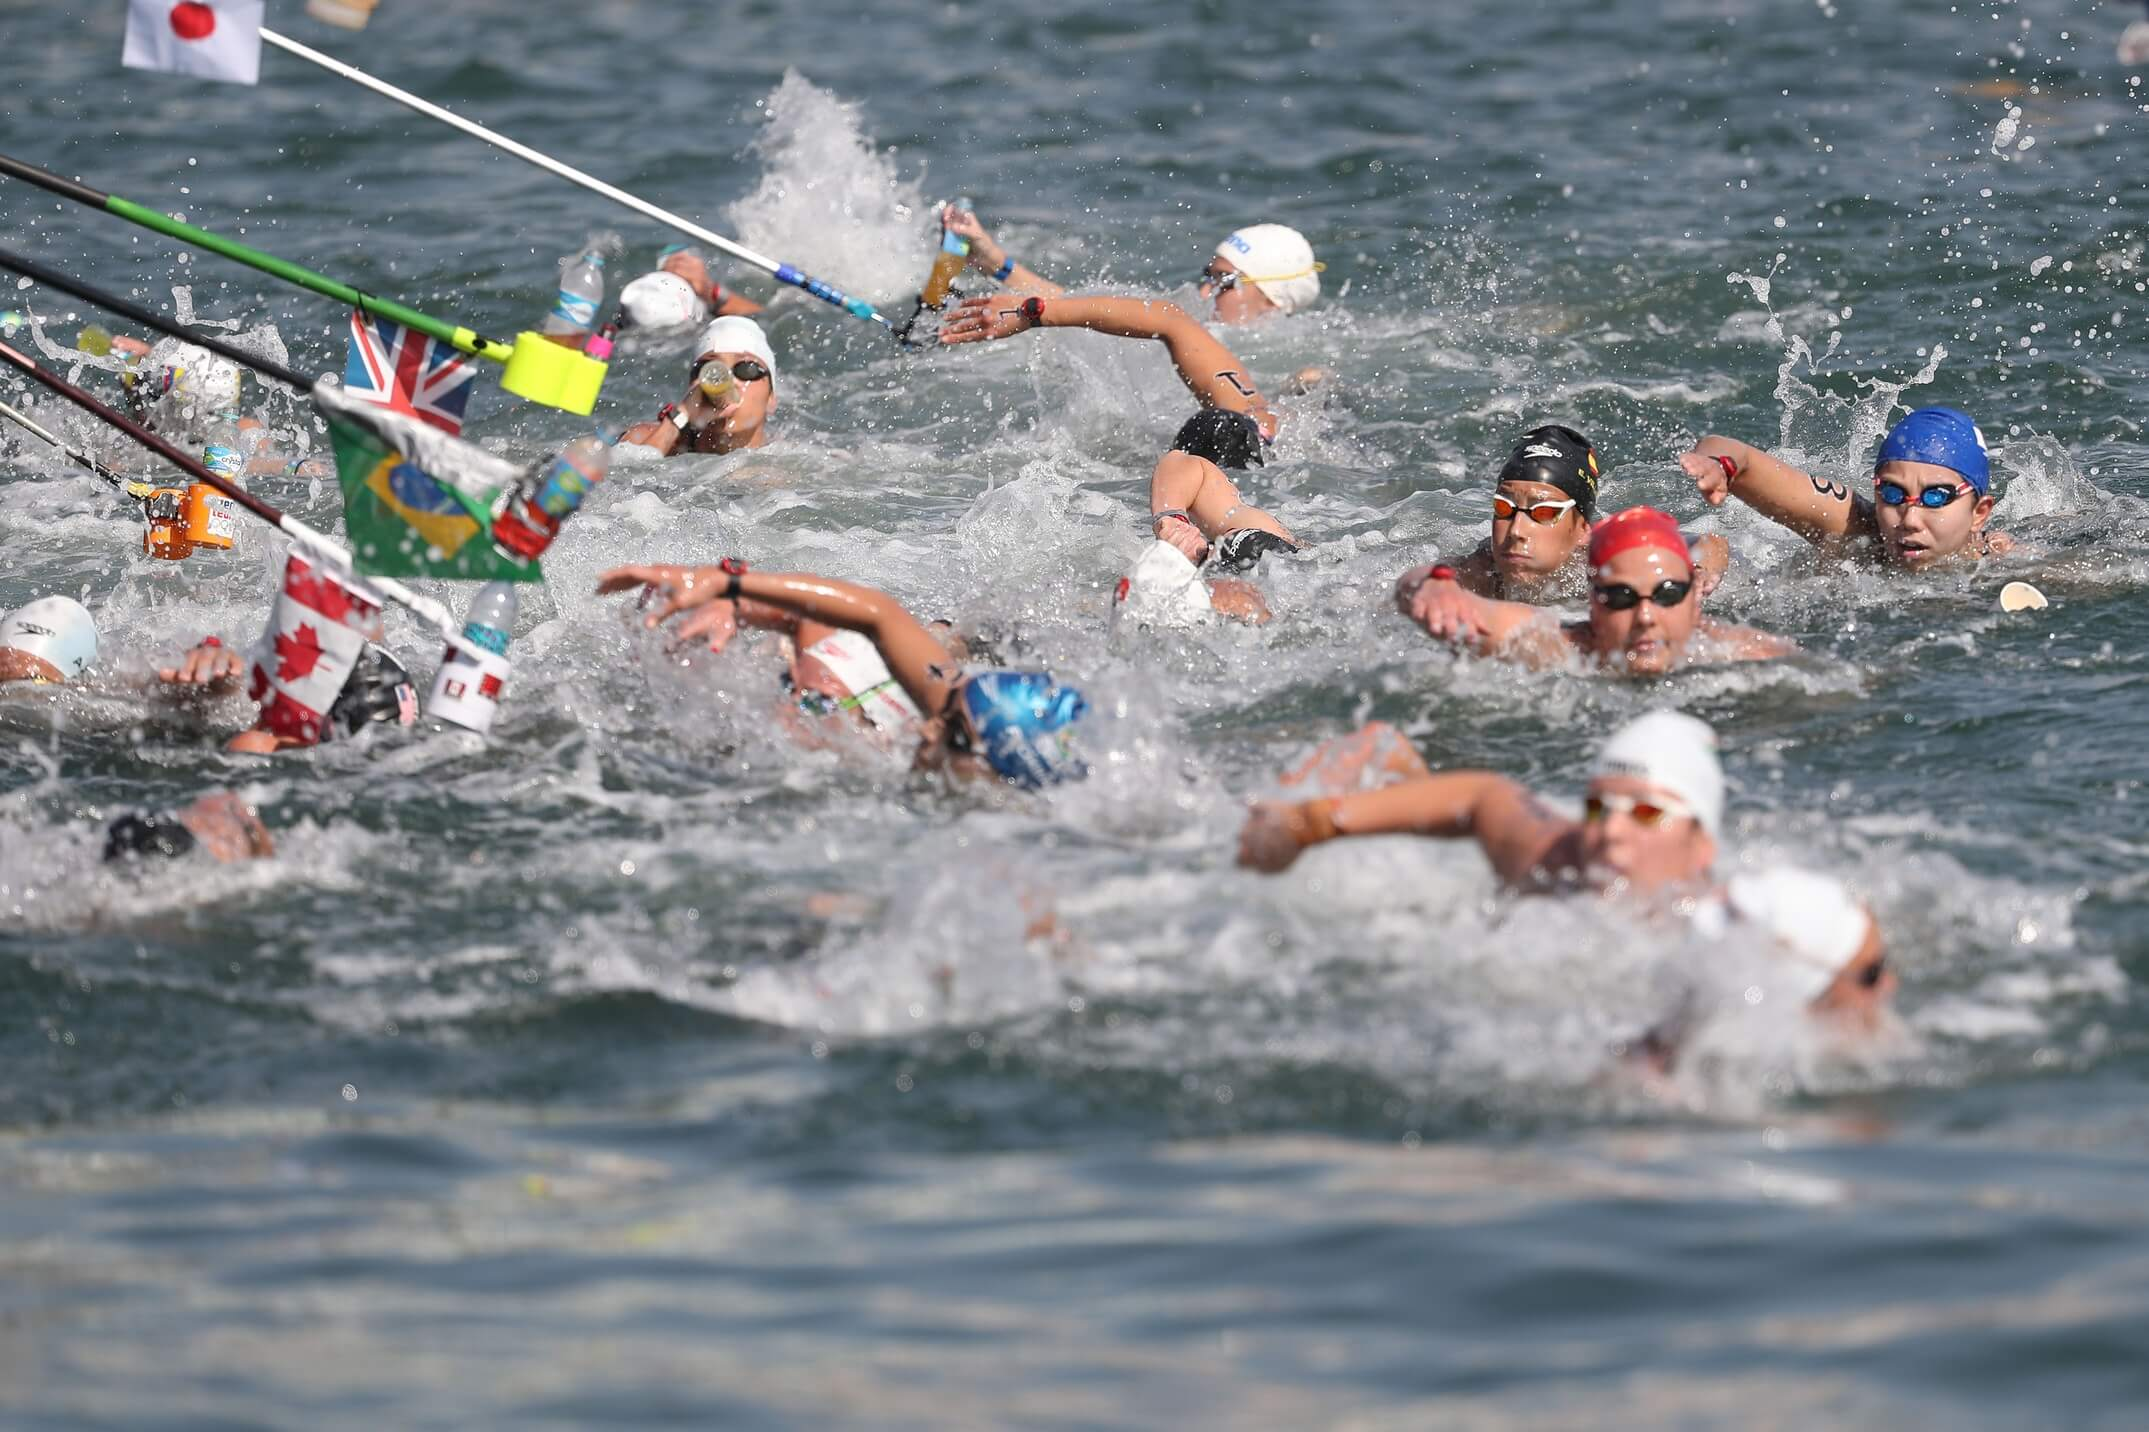 rio-feed-open-water-crowded